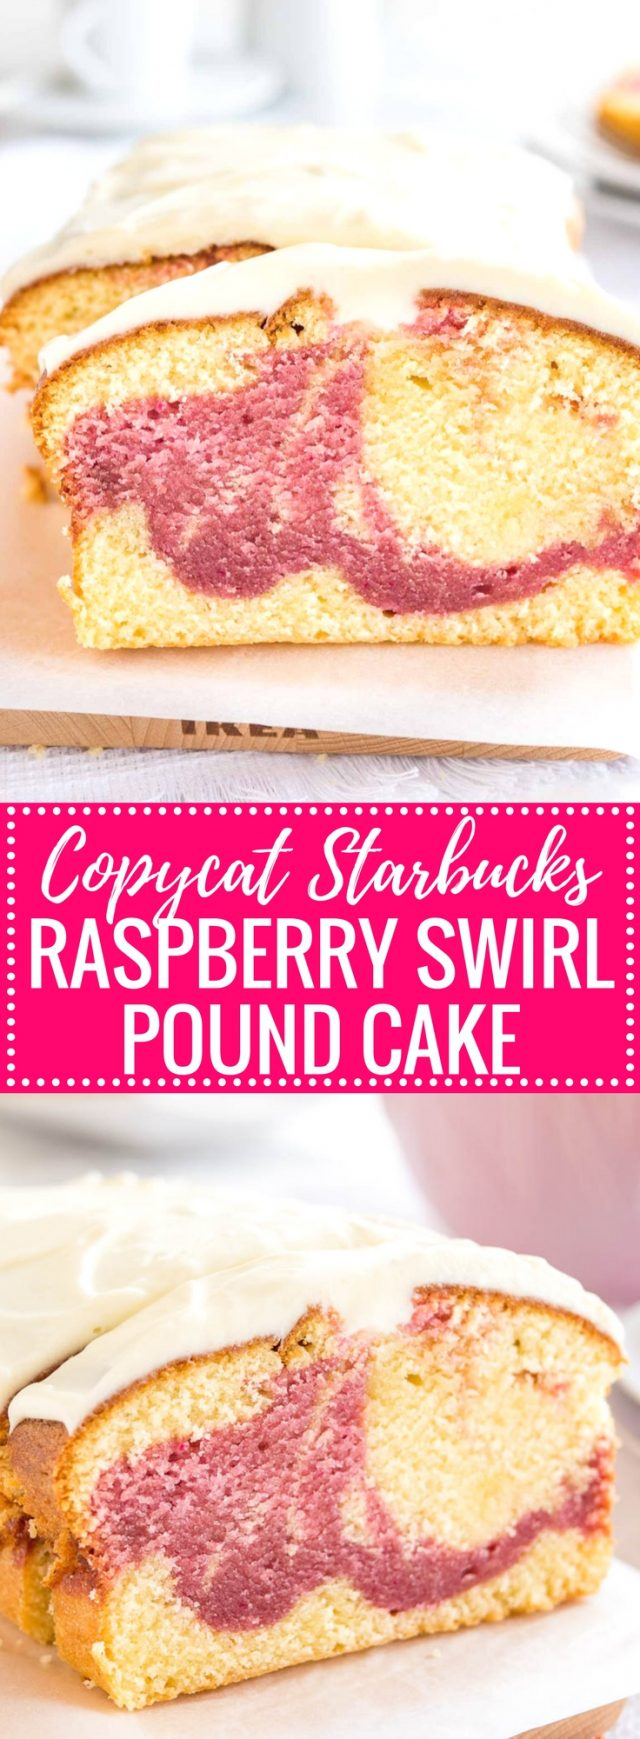 Copycat Starbucks Raspberry Swirl Pound Cake is made from a vanilla and a raspberry batter and topped with delicious cream cheese frosting! A perfect summer treat made completely from scratch without cake mix.